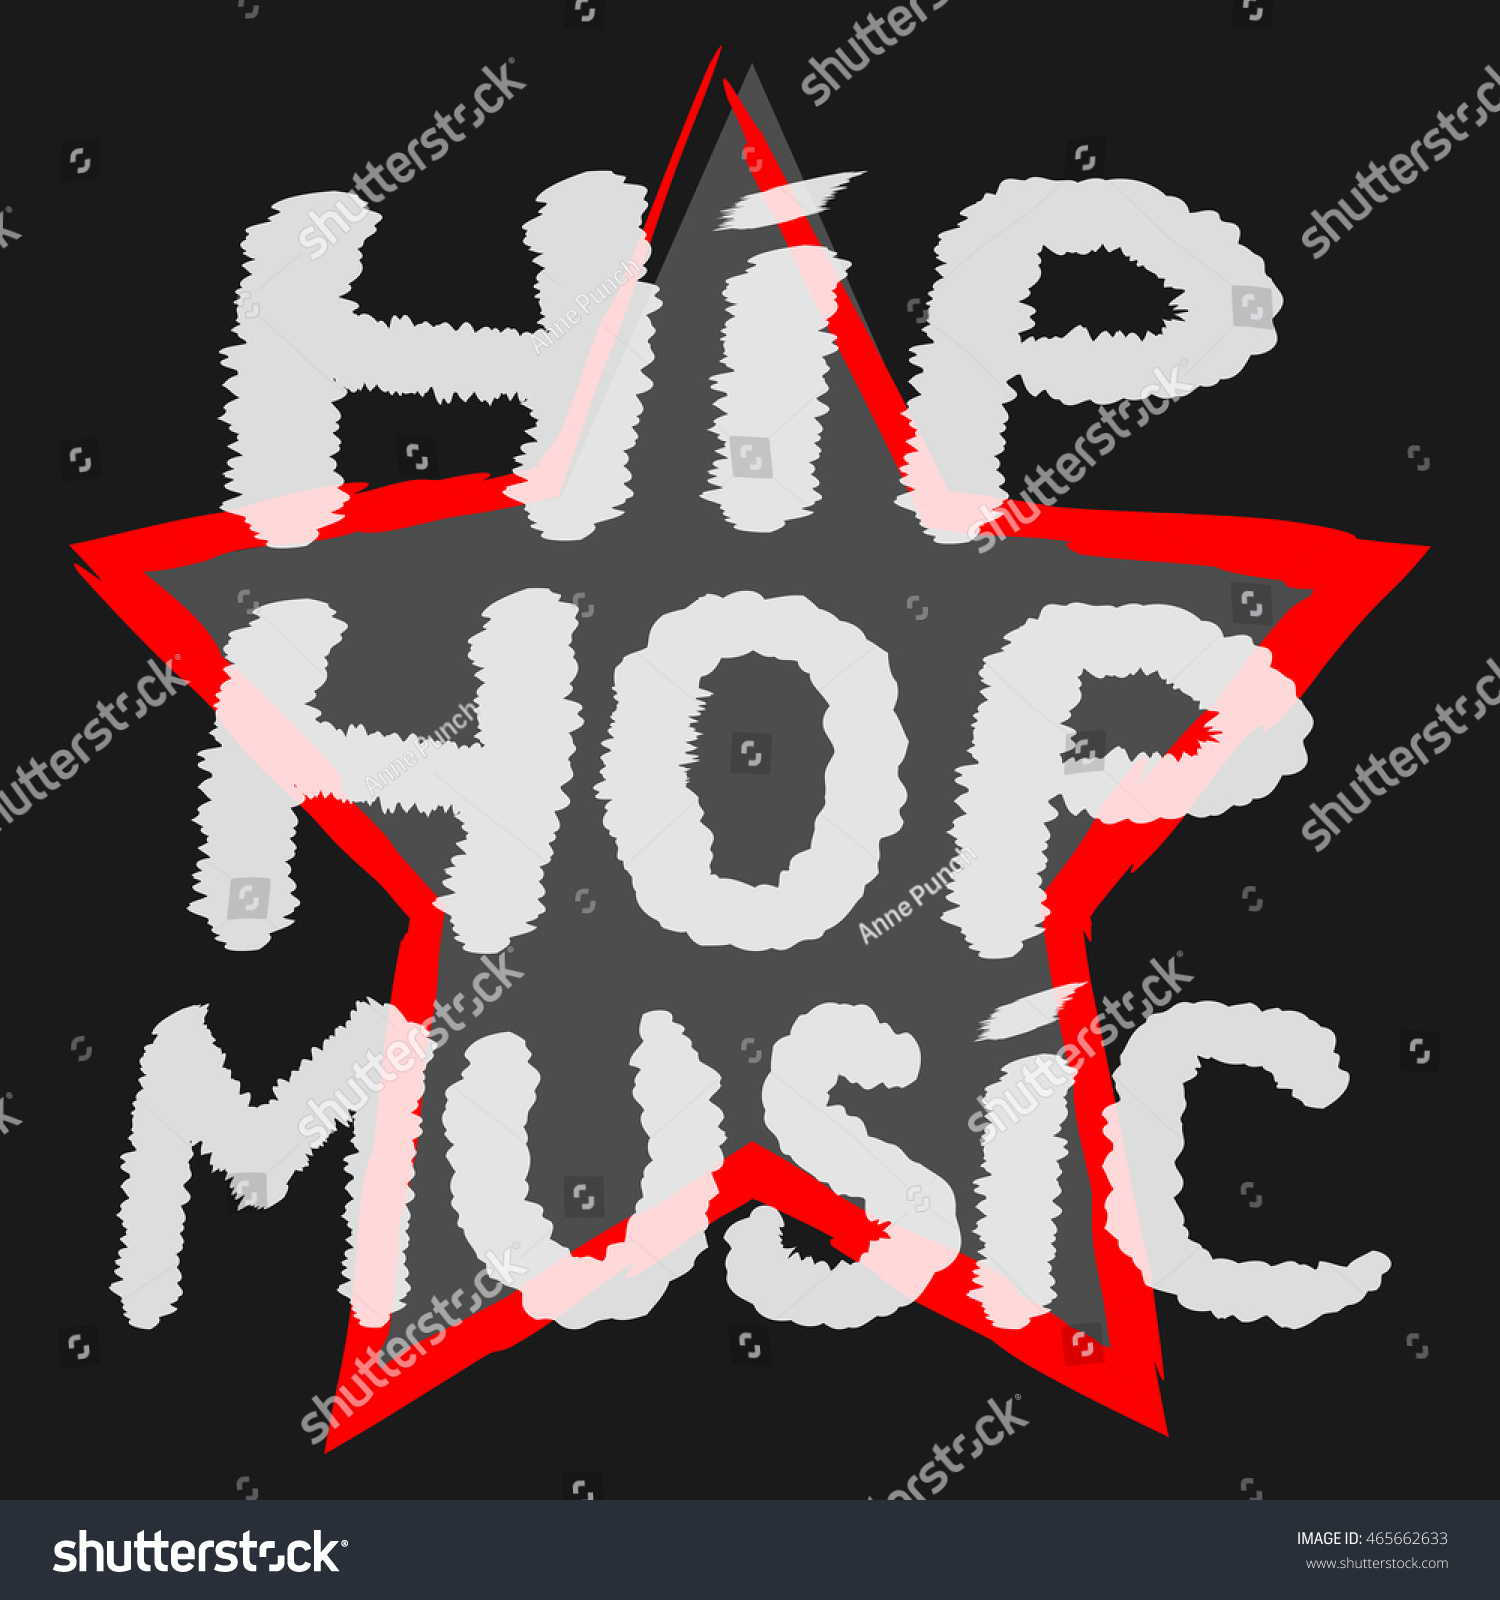 Text Hip Hop Music Handwritten Rough Stock Vector 465662633